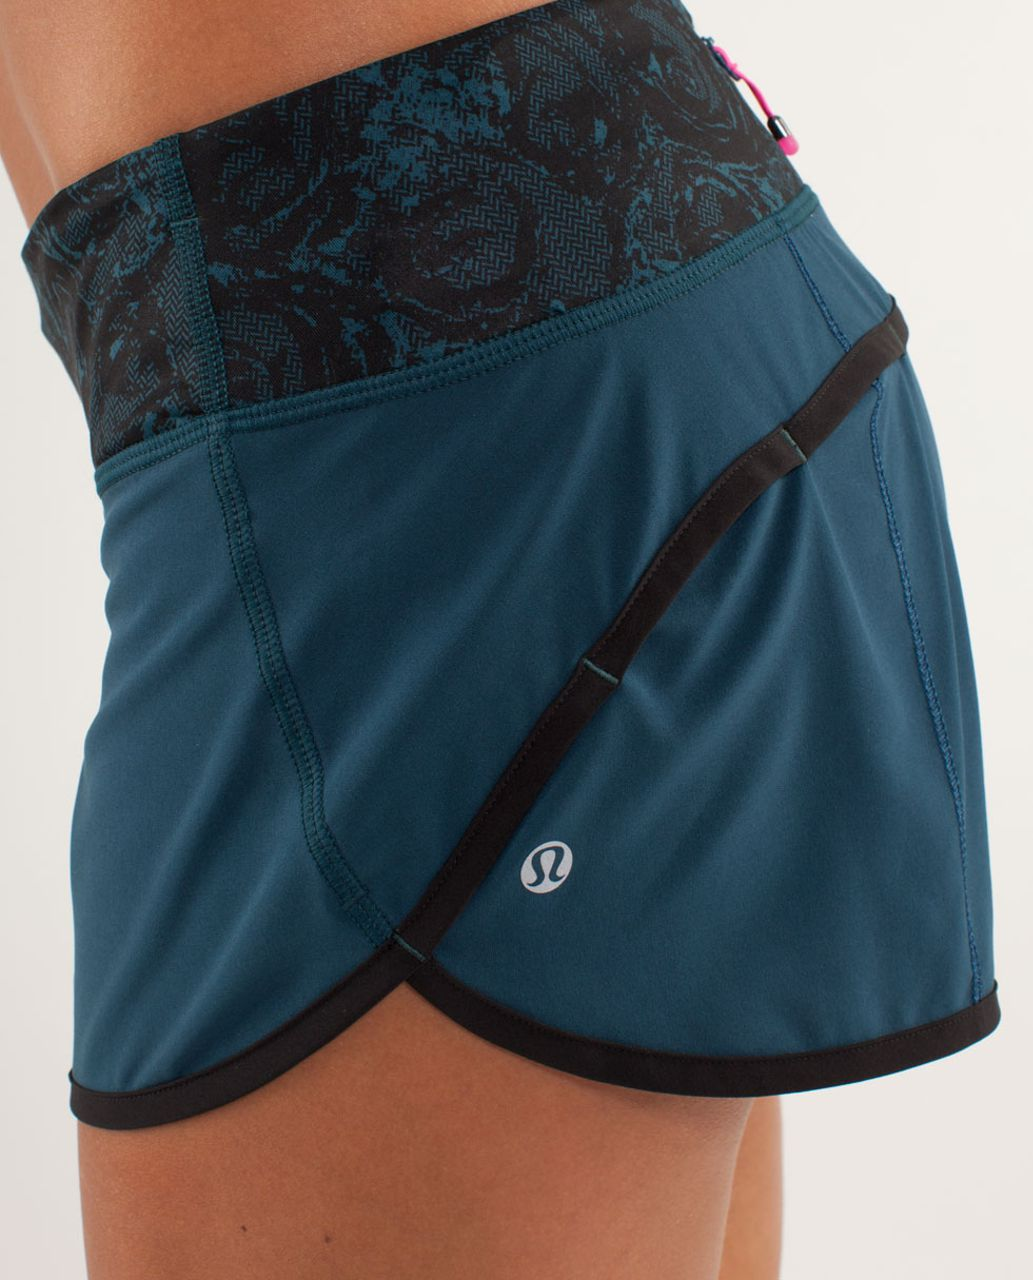 Lululemon Run:  Speed Short - Alberta Lake / Black / Rose Herringbone Printed Alberta Lake Black